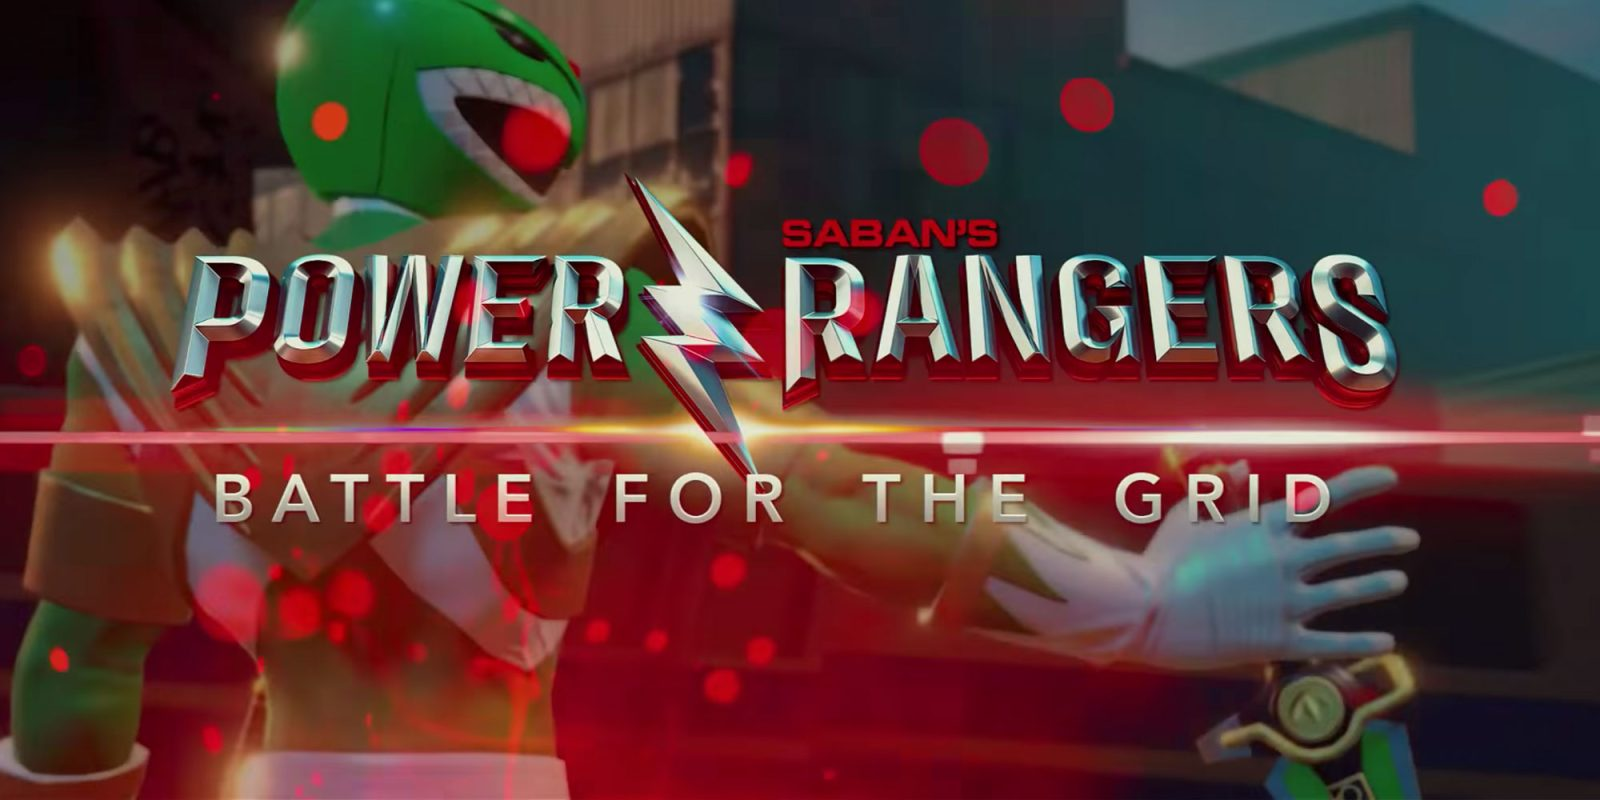 Power Rangers: Battle for the Grid Launches This April